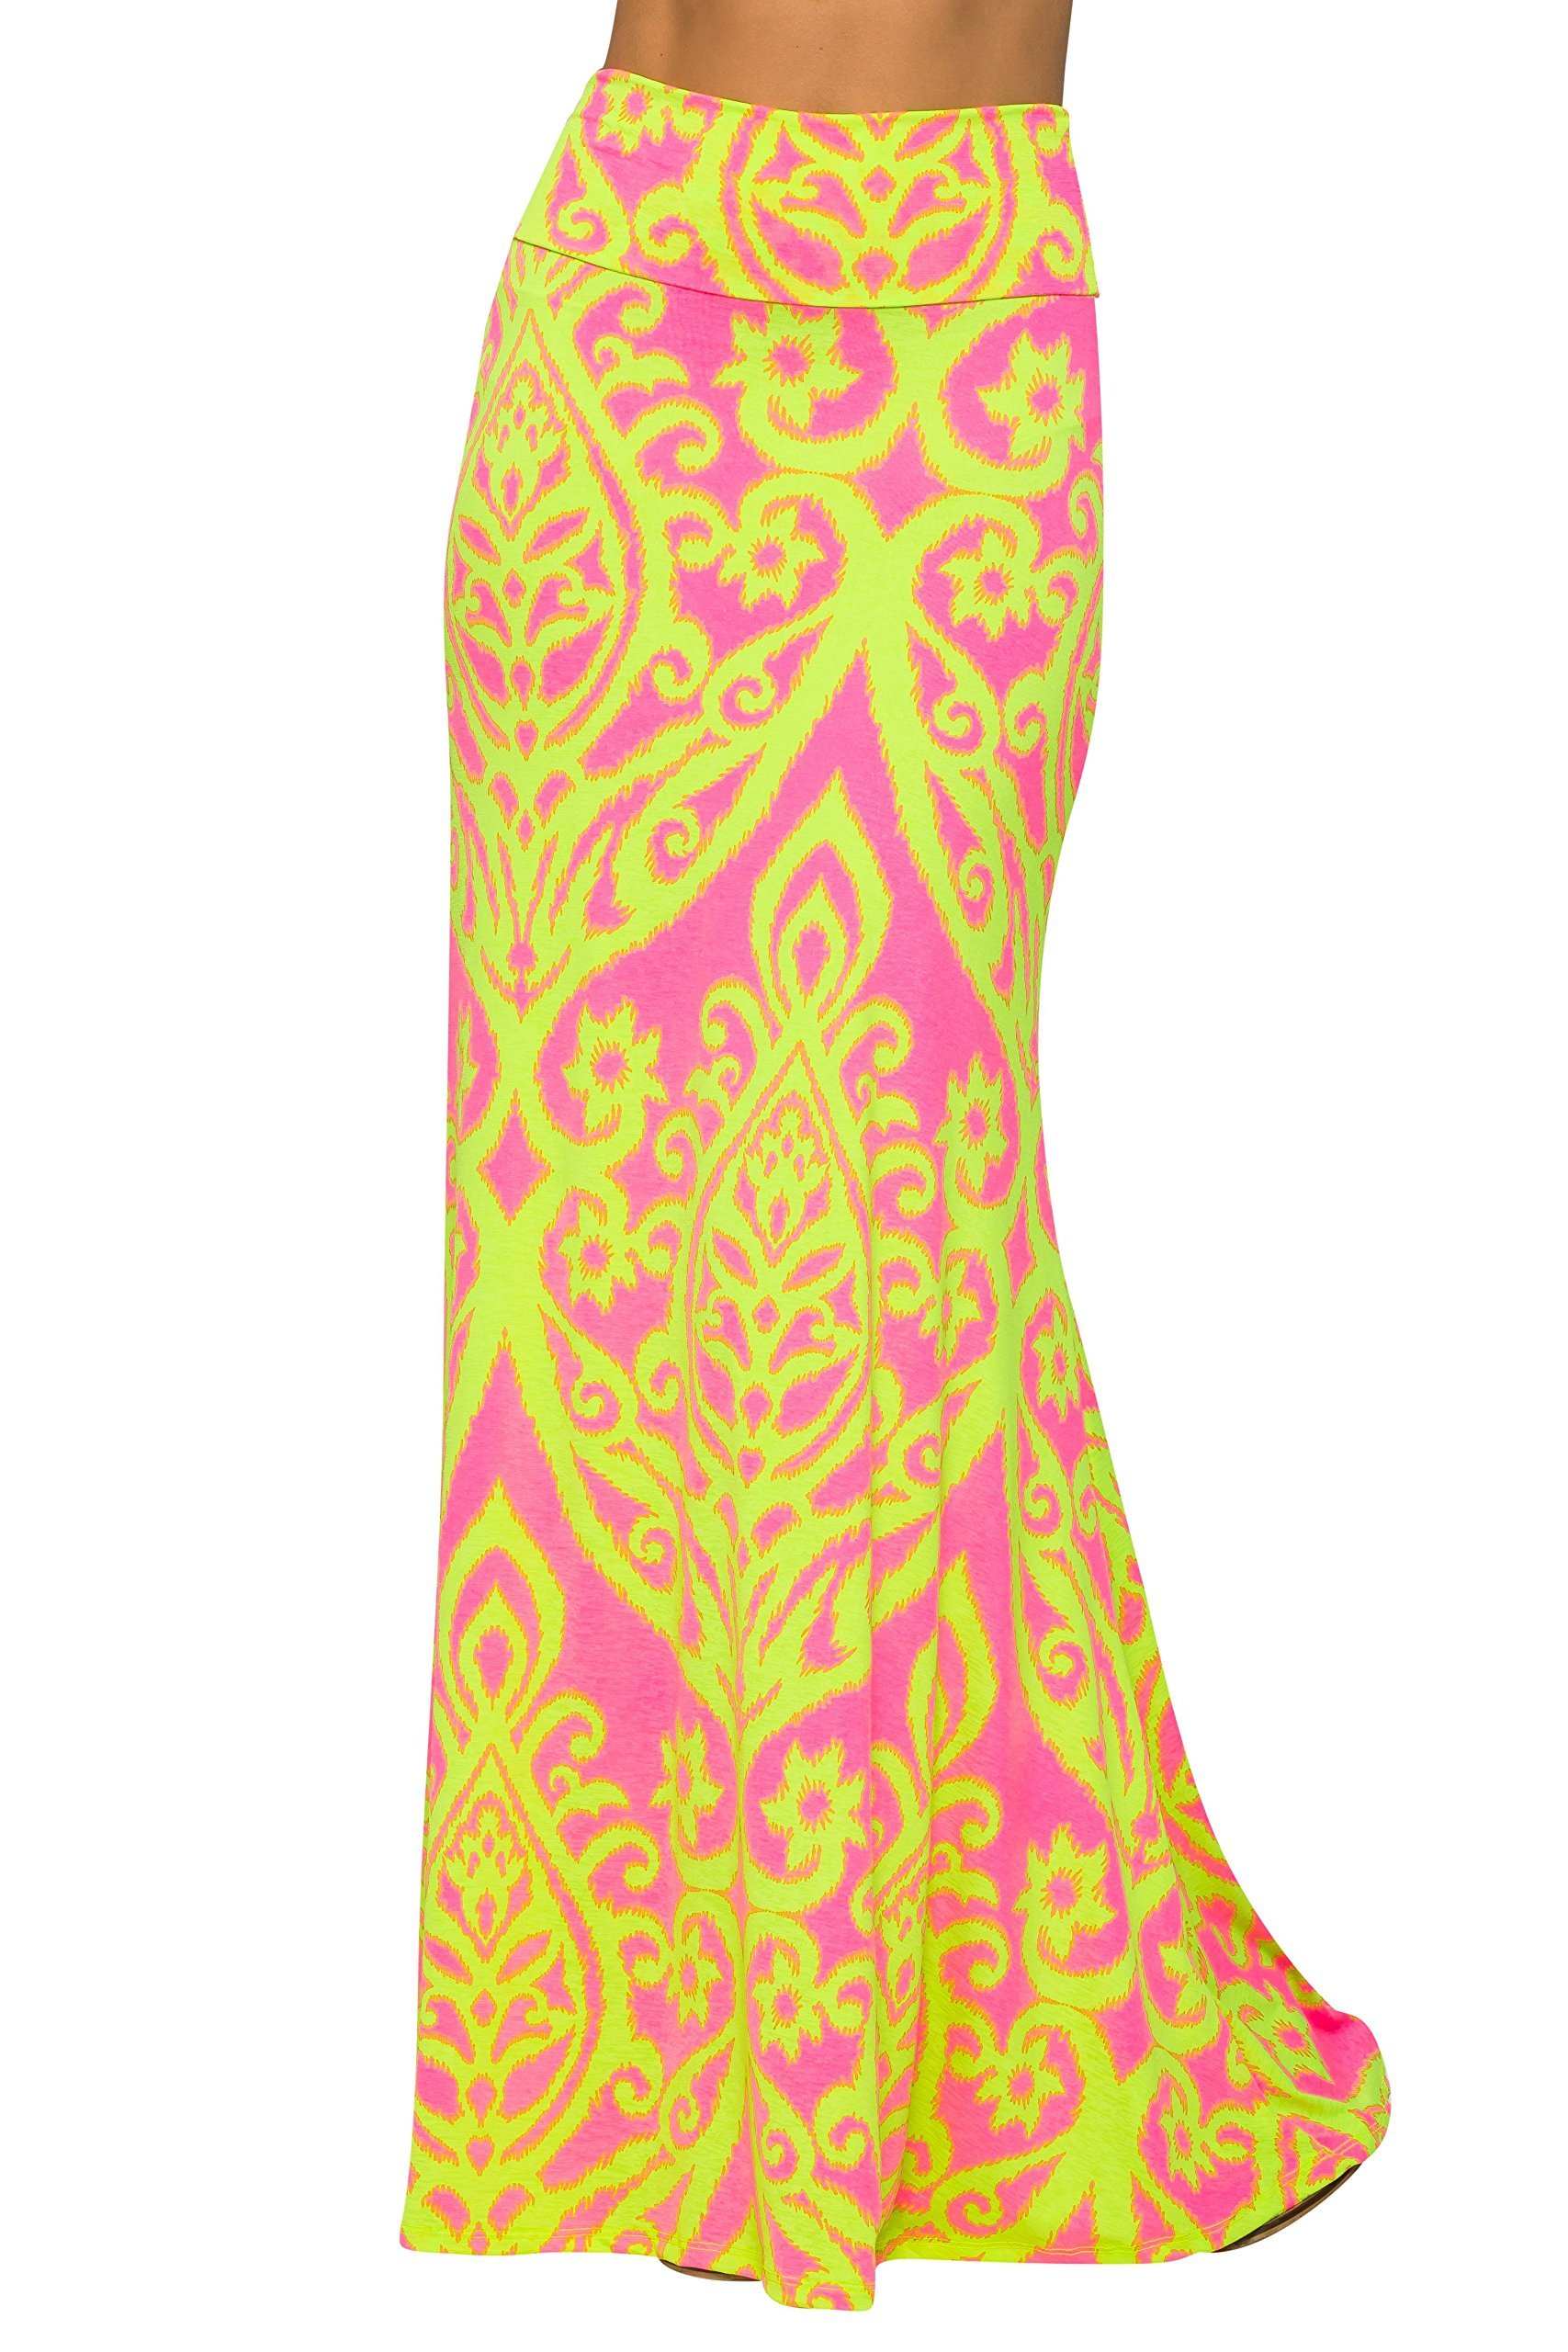 Junky Closet Women's Foldover High Waisted Floor Length Maxi Skirt (3X-Large, Damask 222 Neon Pink)